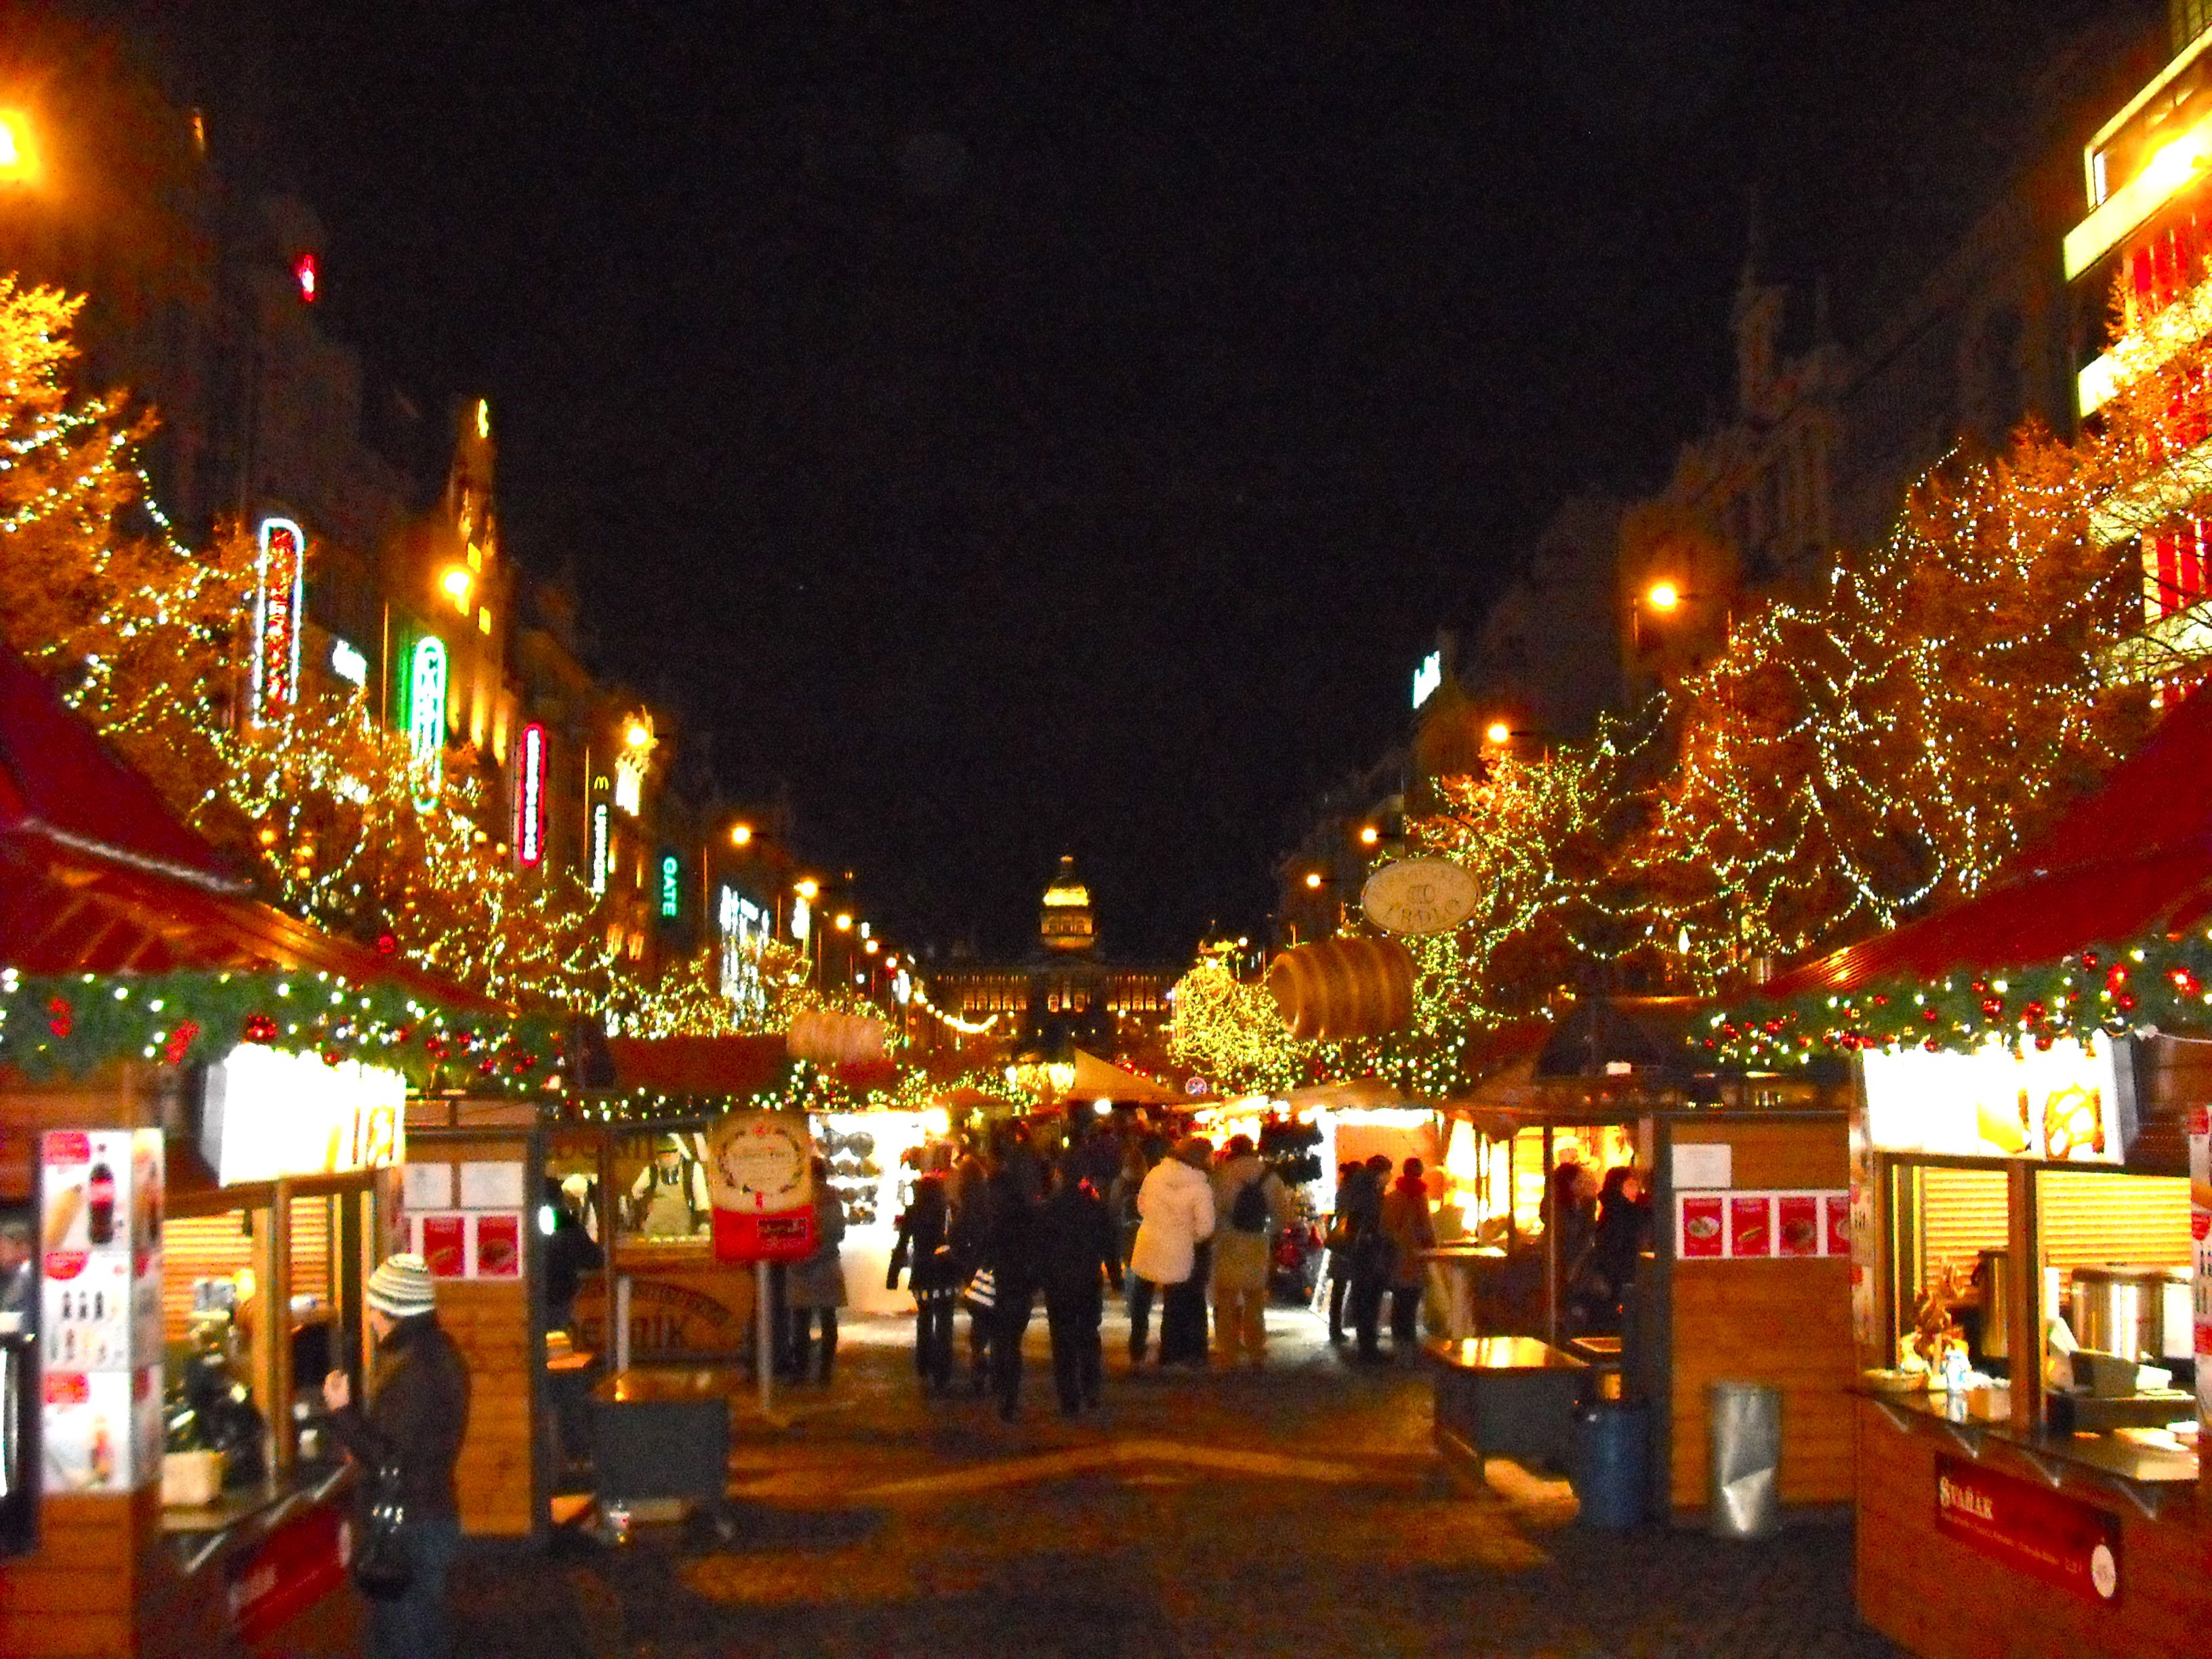 Top 5 Christmas Markets I Would Love To Visit